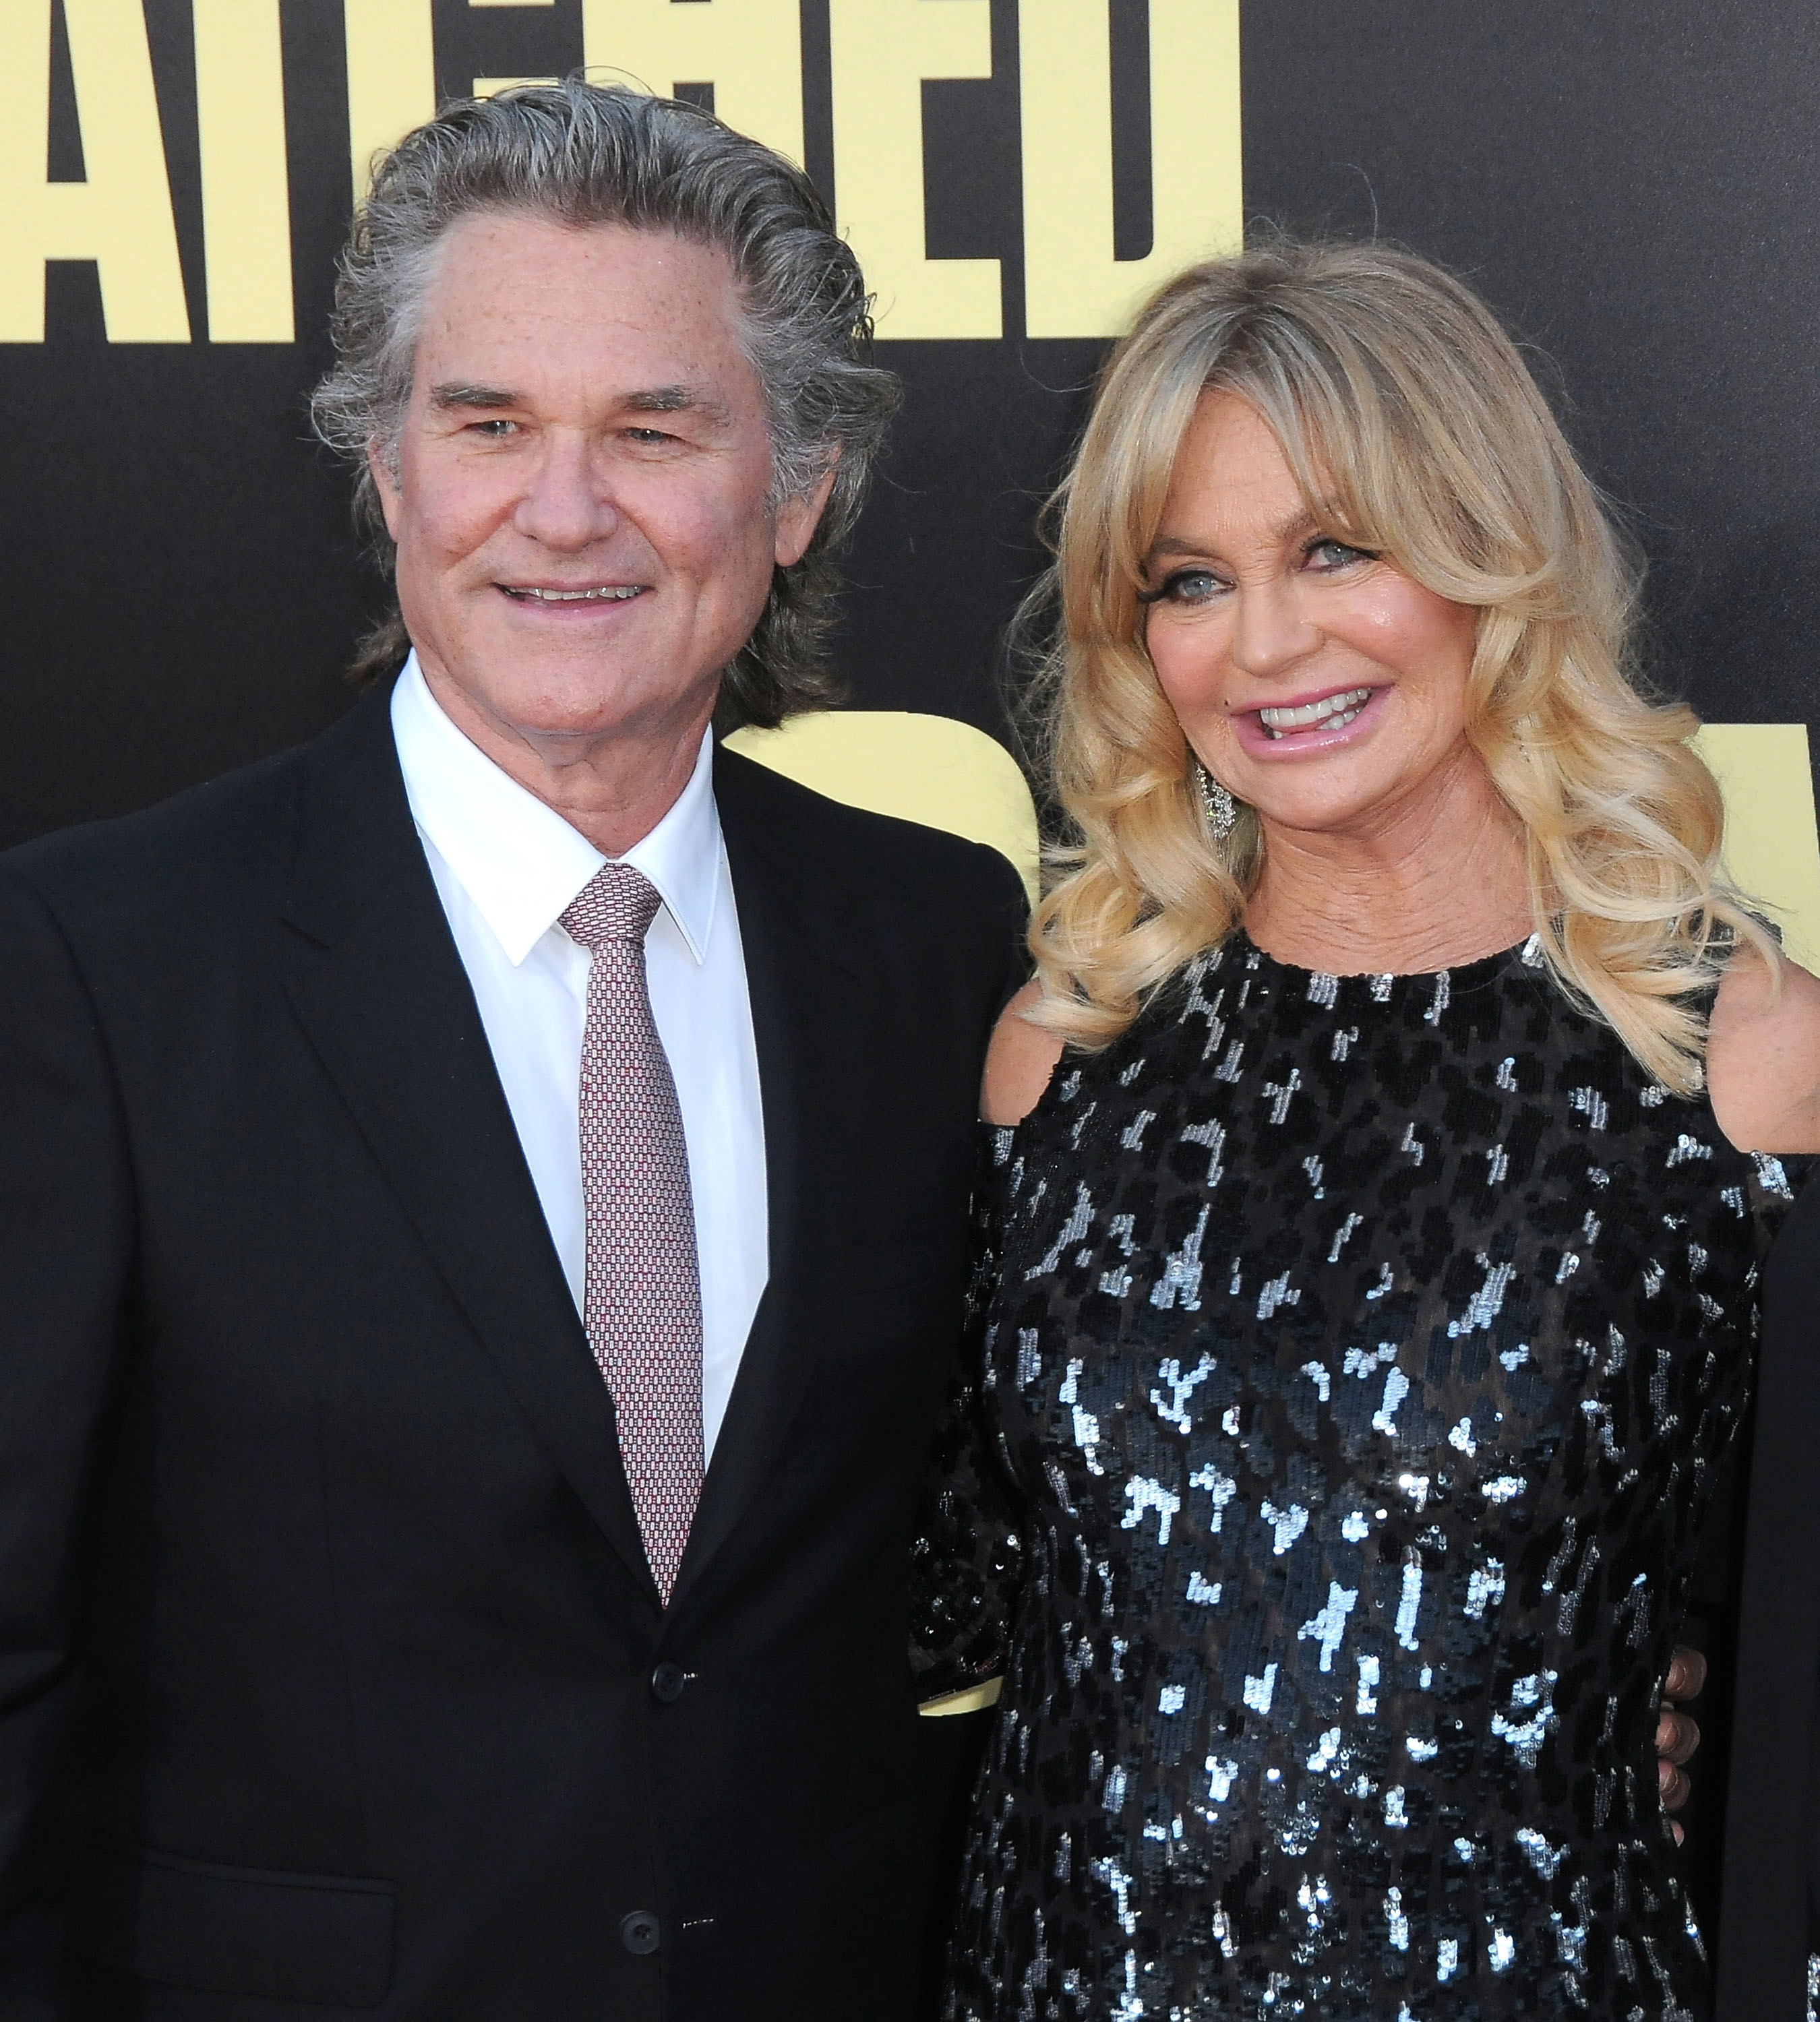 """Kurt Russell and Goldie Hawn attend the premiere of """"Snatched"""" in Westwood, California on May 10, 2017 